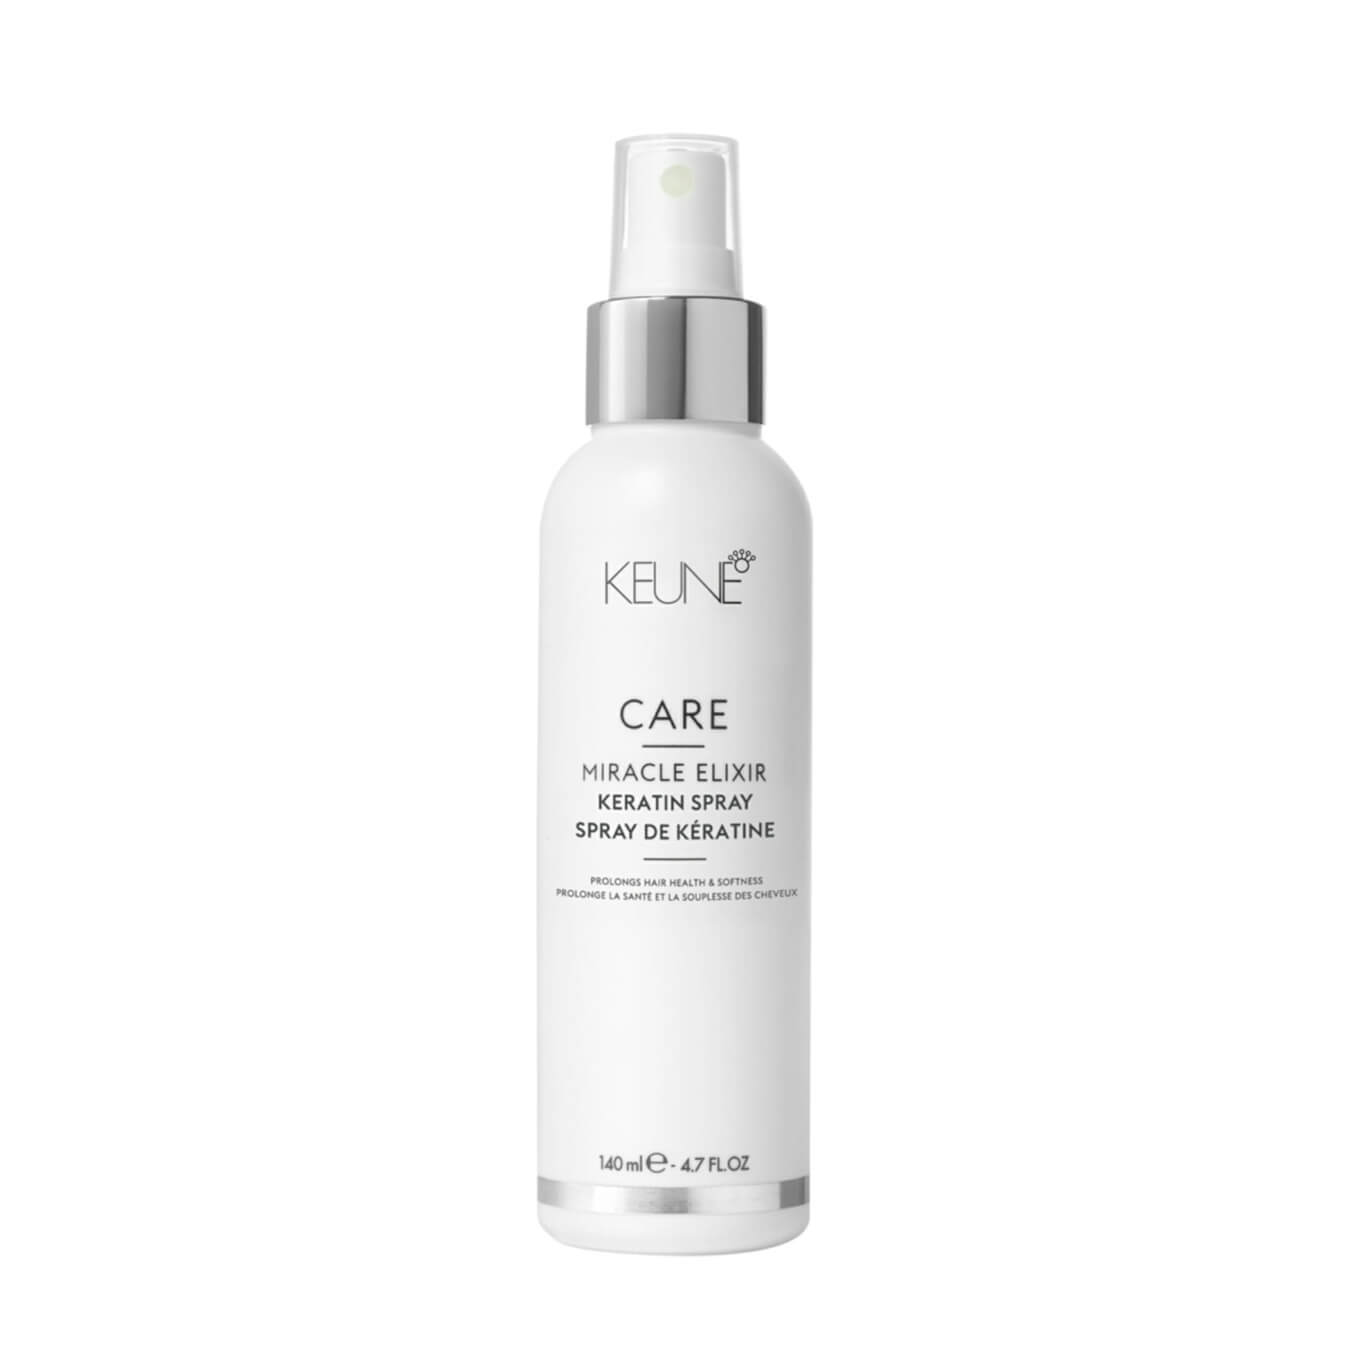 Koop Keune Care Miracle Elixir Keratin Spray 140ml